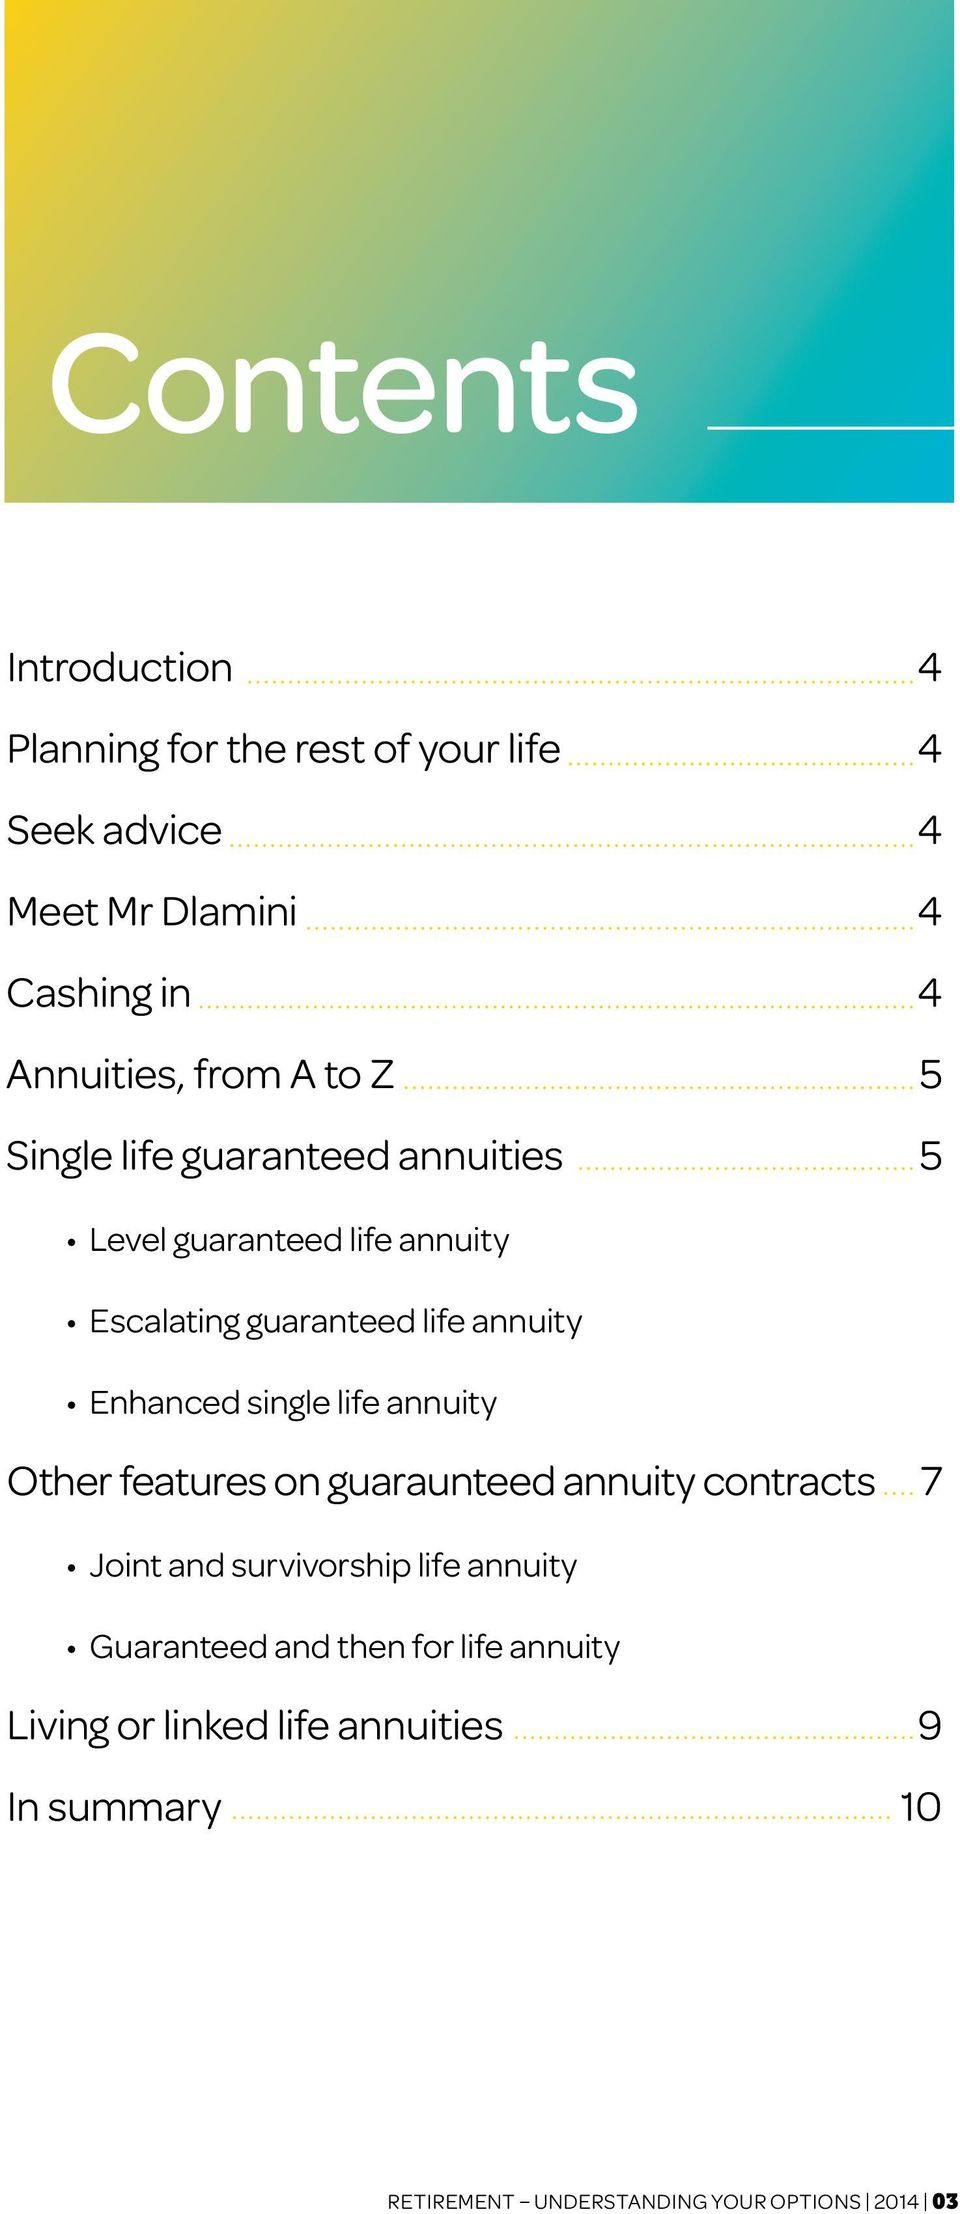 Enhanced single life annuity Other features on guaraunteed annuity contracts 7 Joint and survivorship life annuity